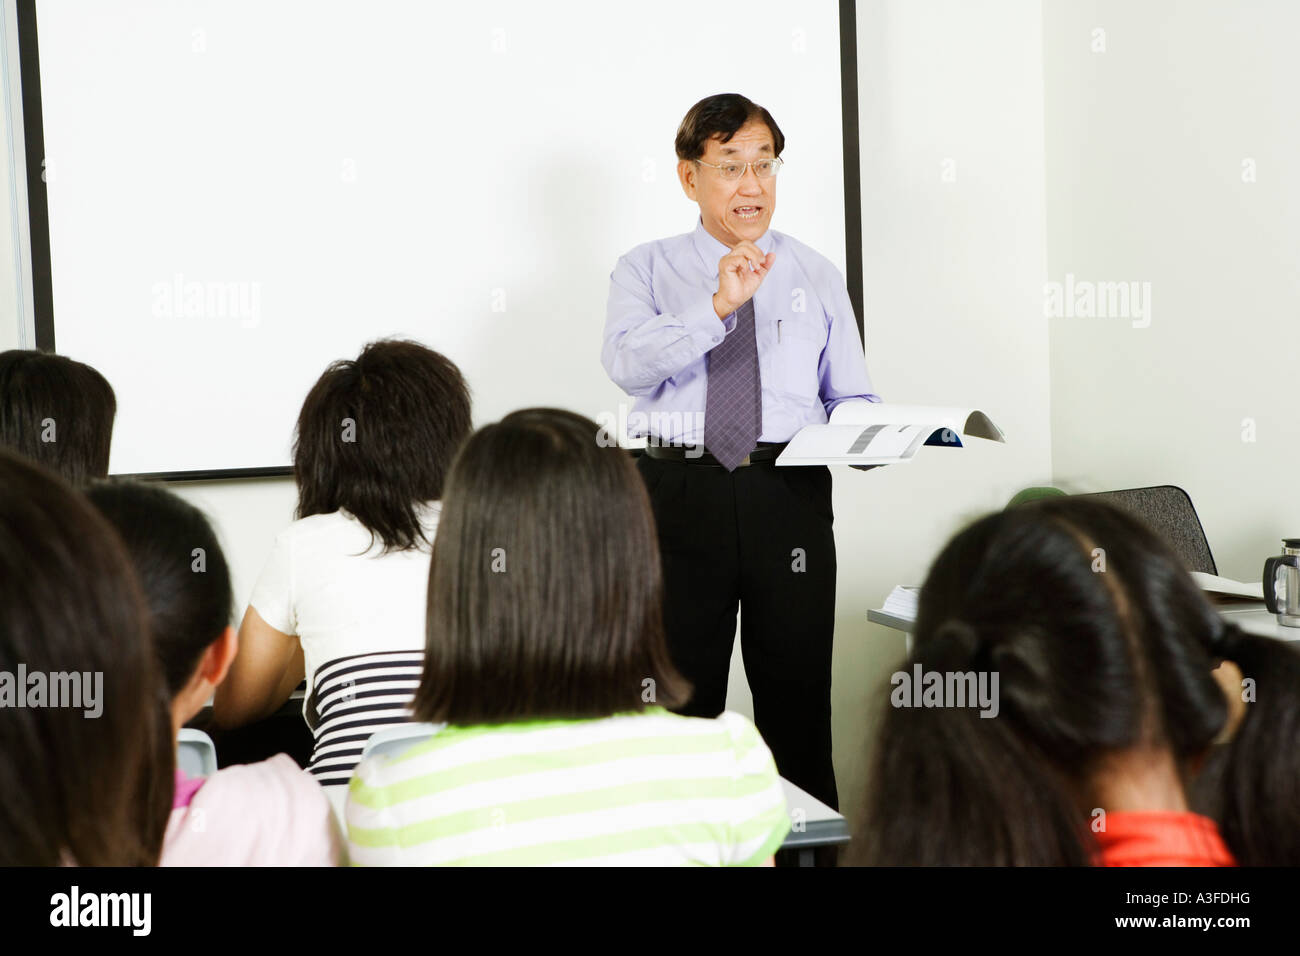 Teacher teaching in a classroom - Stock Image